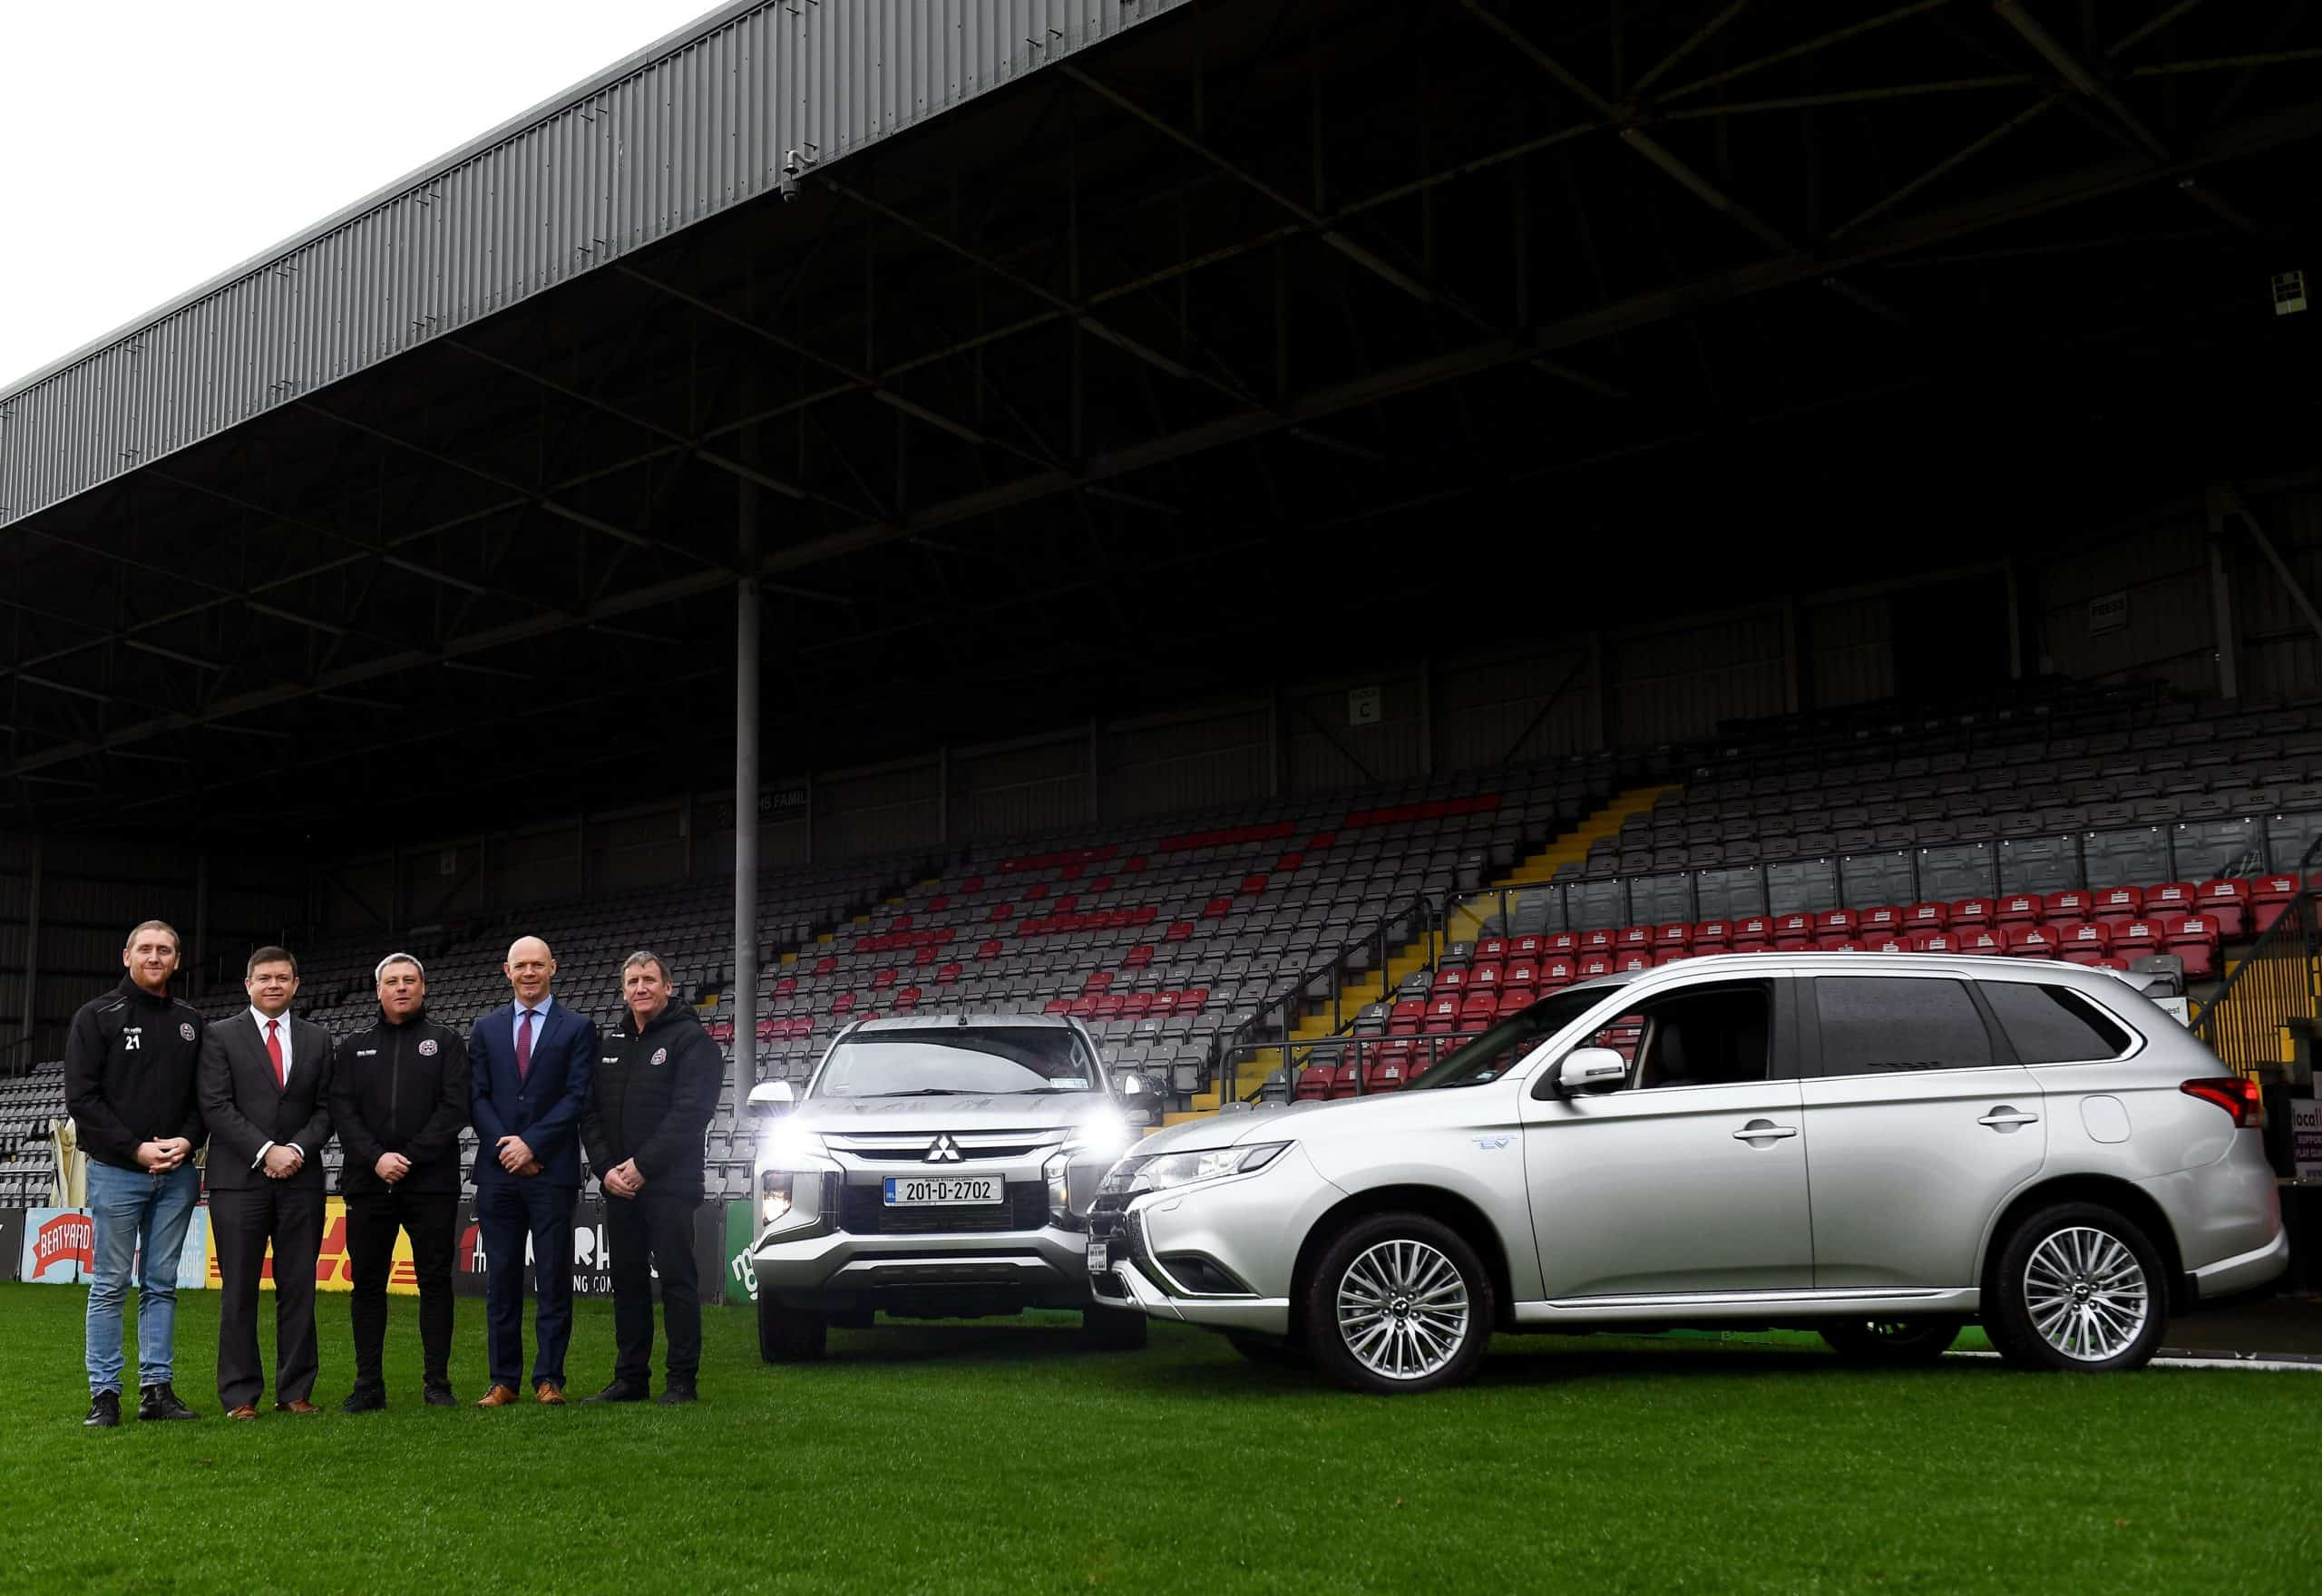 Bohemian FC take delivery of their new Mitsubishi Outlander PHEV kit car as Mitsubishi Motors are announced as the clubs official vehicle partner. Pictured are, from left, Daniel Lambert, Director Bohemian FC, Gerard Rice, Managing Director Mitsubishi Motors, Bohemian FC manager Keith Long, Mark Clarke, Dealer Principle Westbrook Motors and Stephen Lambert, Secretary Bohemian FC, at Dalymount Park in Dublin.